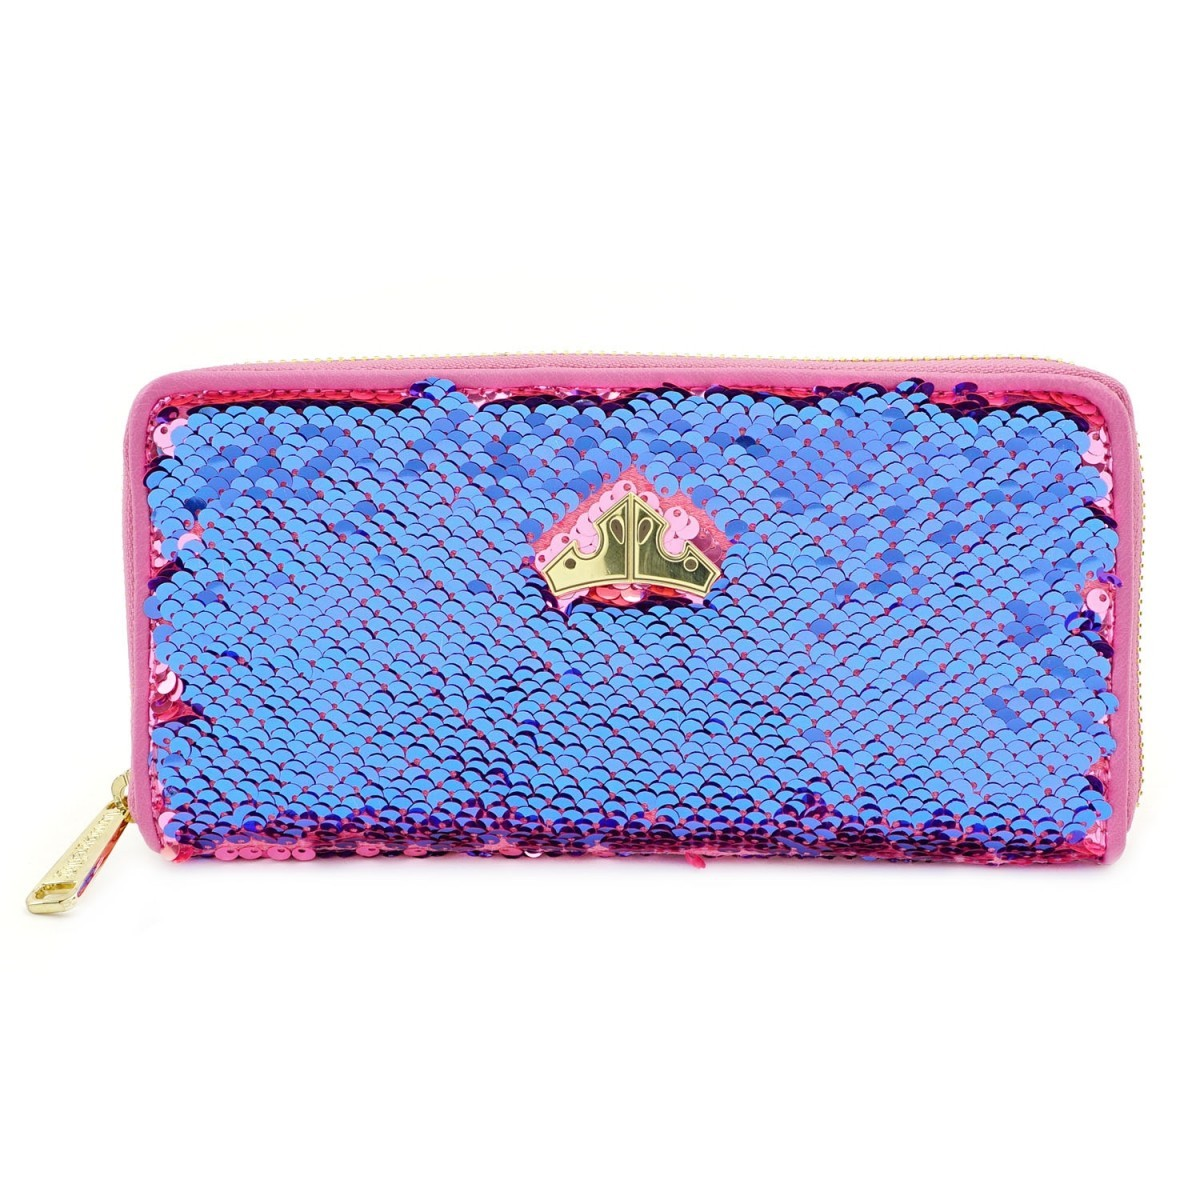 Loungefly: Sleeping Beauty - Reversible Sequin Purse image